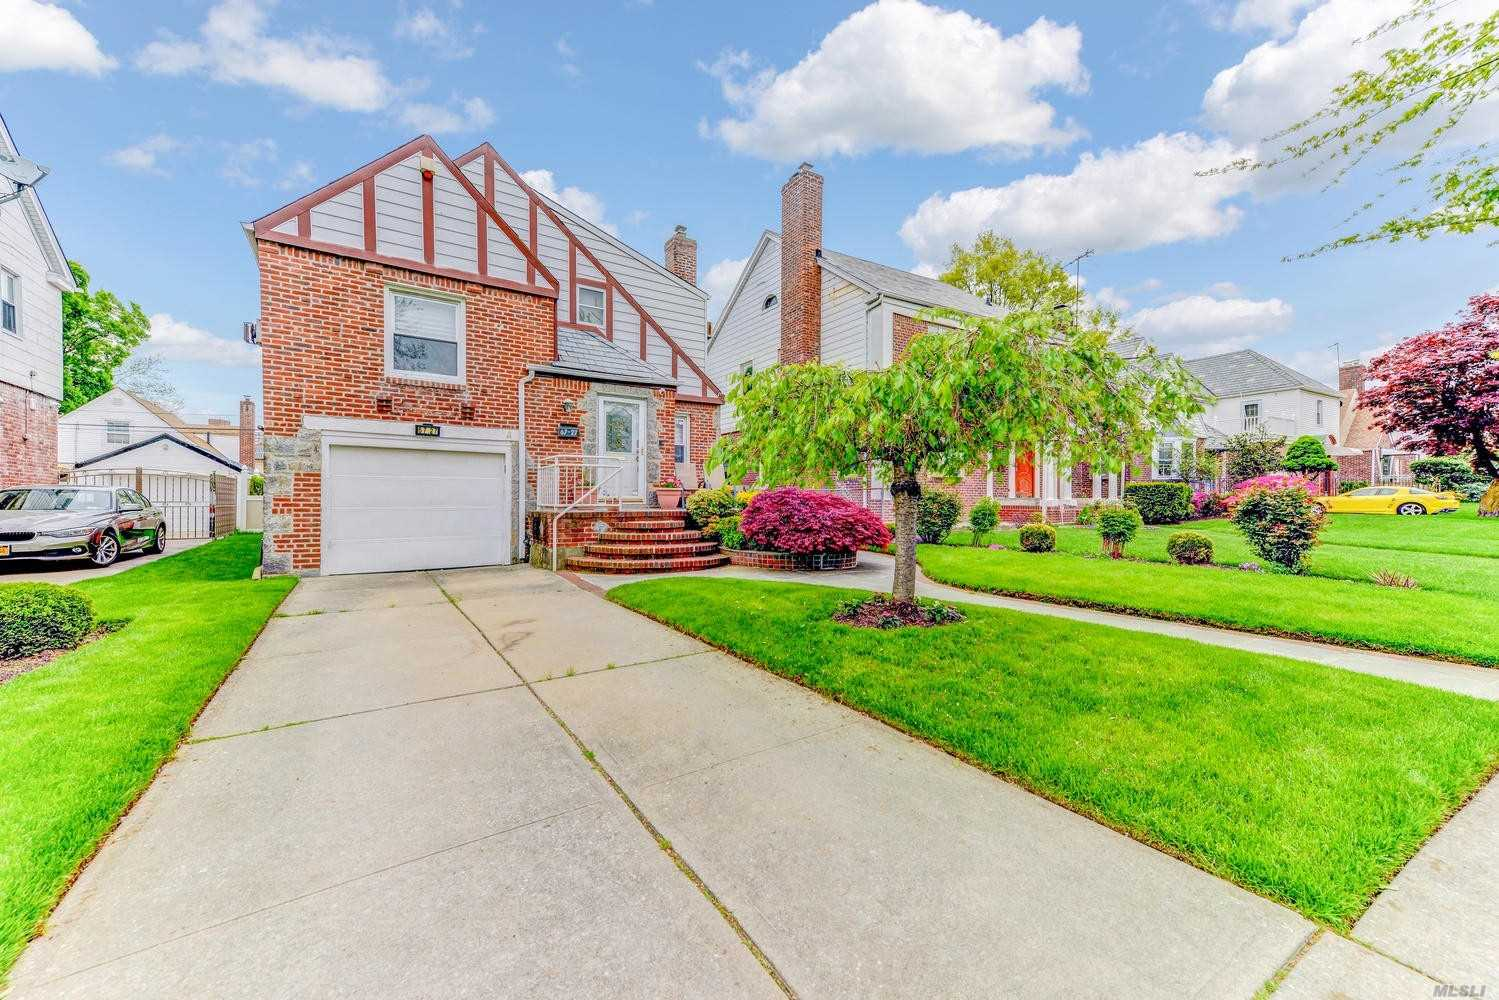 One of a kind split level with large 5 bed 3 baths , great for large family very spacious, has large master suite, eat in kitchen, den, sprinkler system, large backyard attached garage, finished basement and so much more must see....